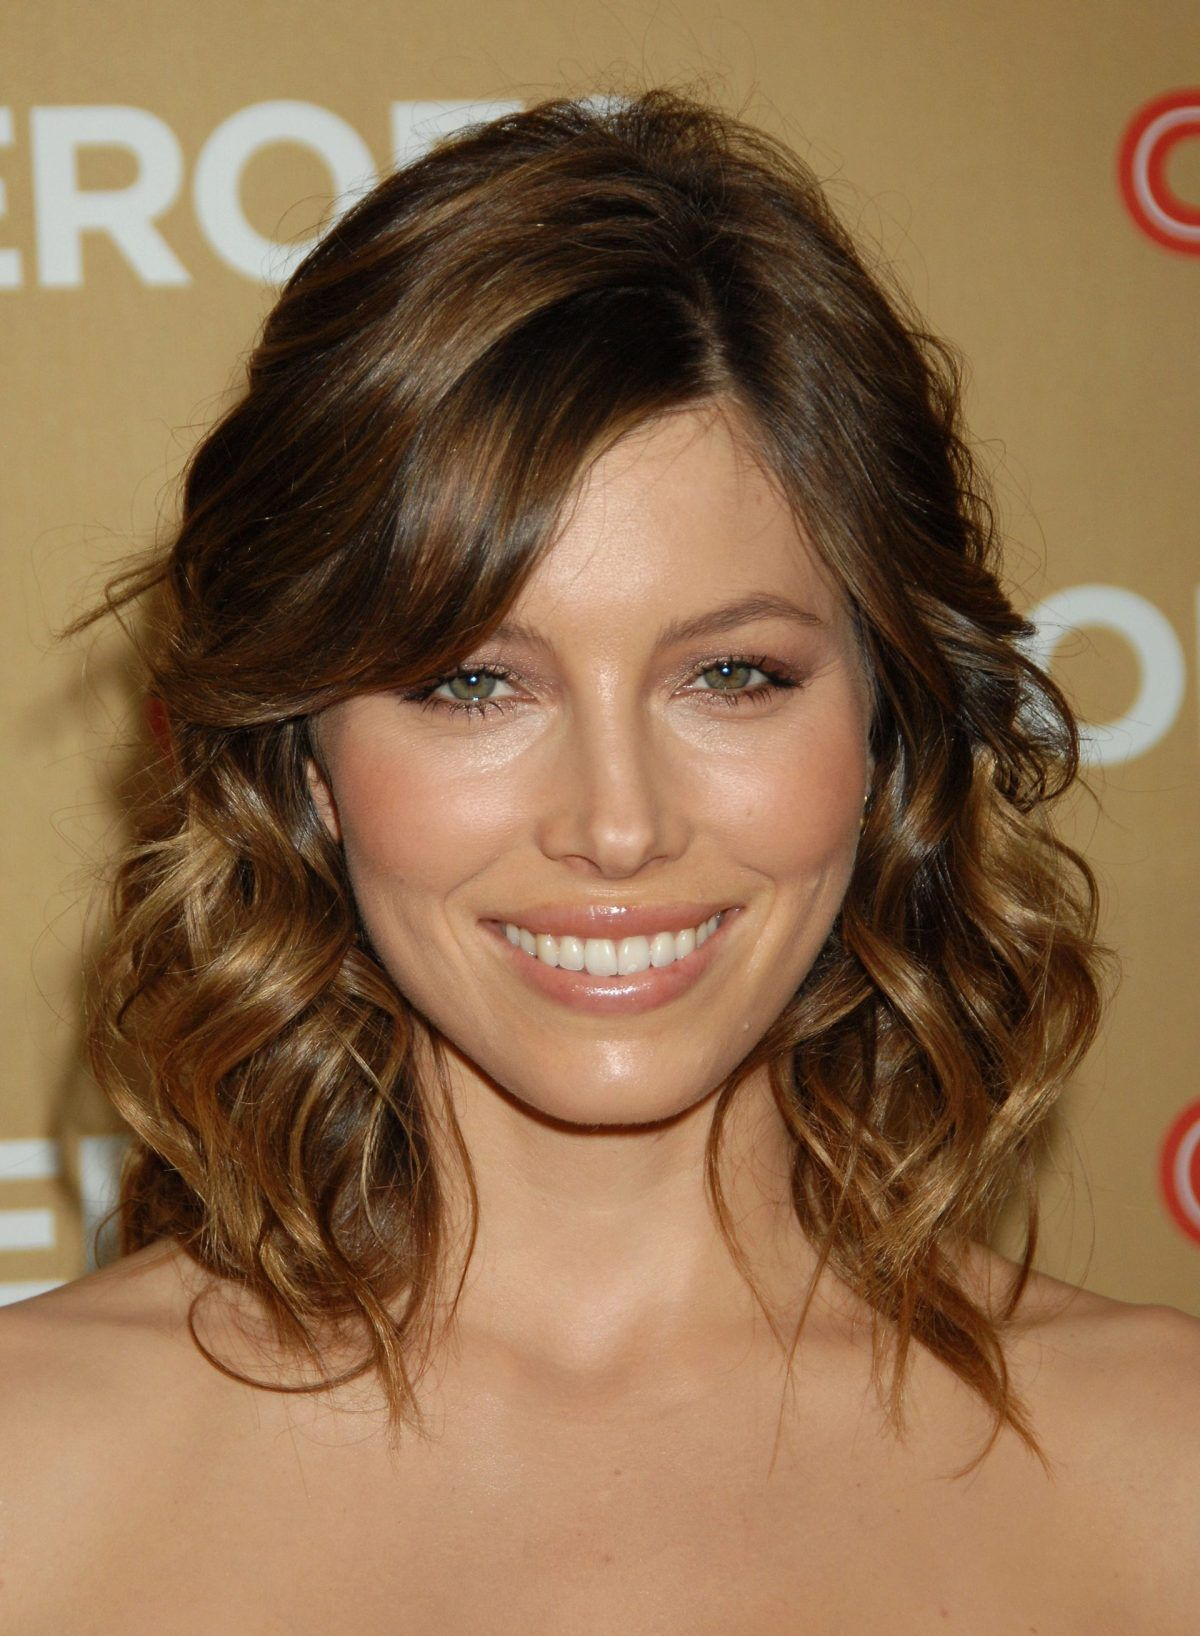 Brunette Short Hair Jessica Biel Bob Hairstyles Hairstyles With Bangs